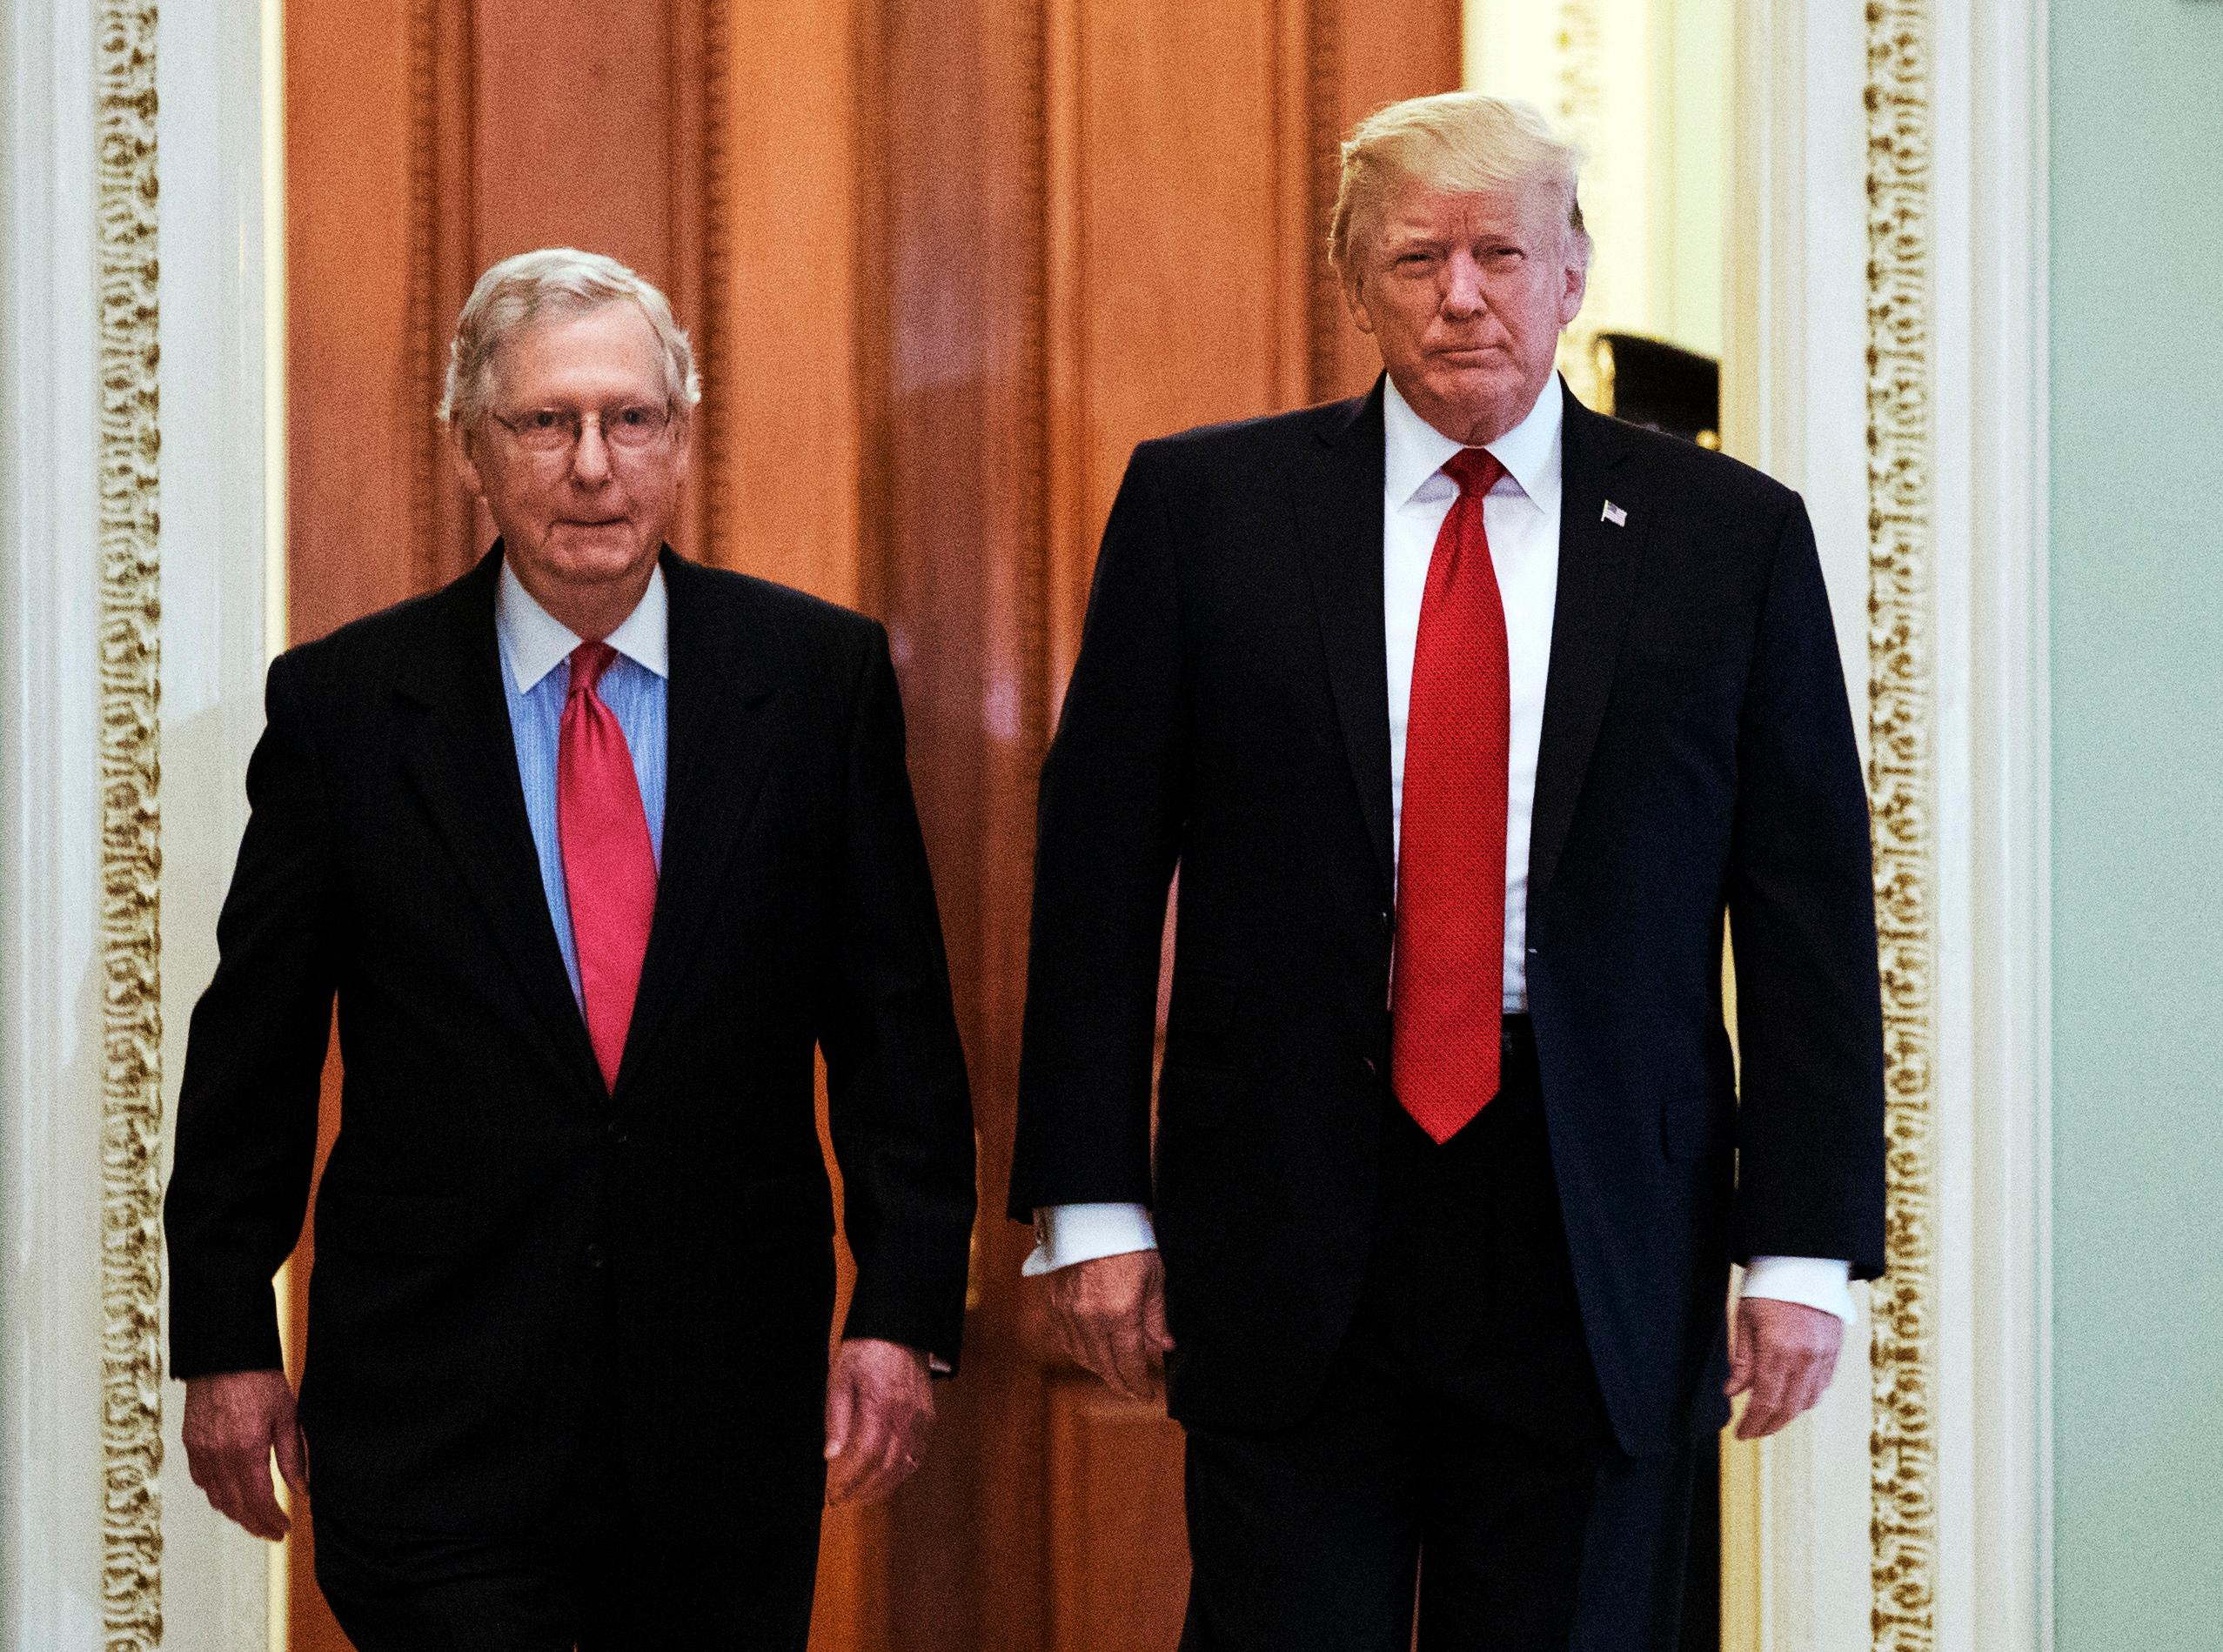 President Donald Trump, escorted by Senate Majority Leader Mitch McConnell, R-Ky., arrives on Capitol Hill to have lunch with Senate Republicans and push for his tax reform agenda, in Washington, Tuesday, Oct. 24, 2017.  (AP Photo/Manuel Balce Ceneta)